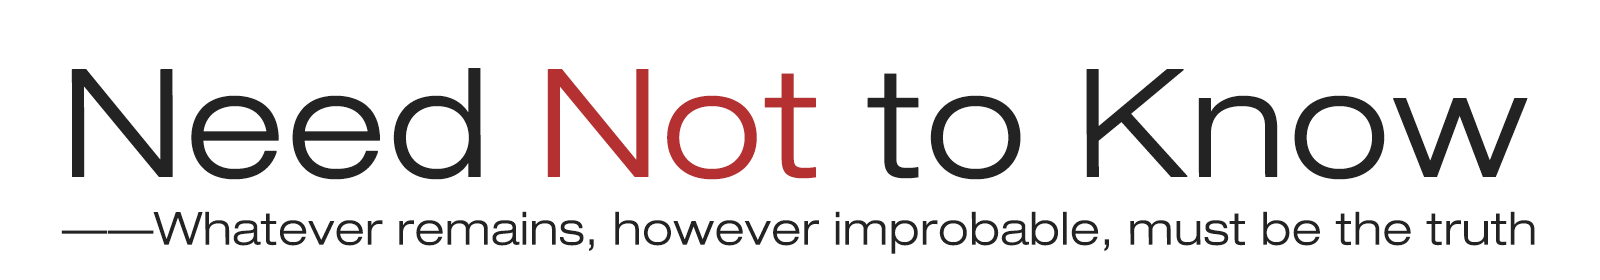 Need Not to Know logo